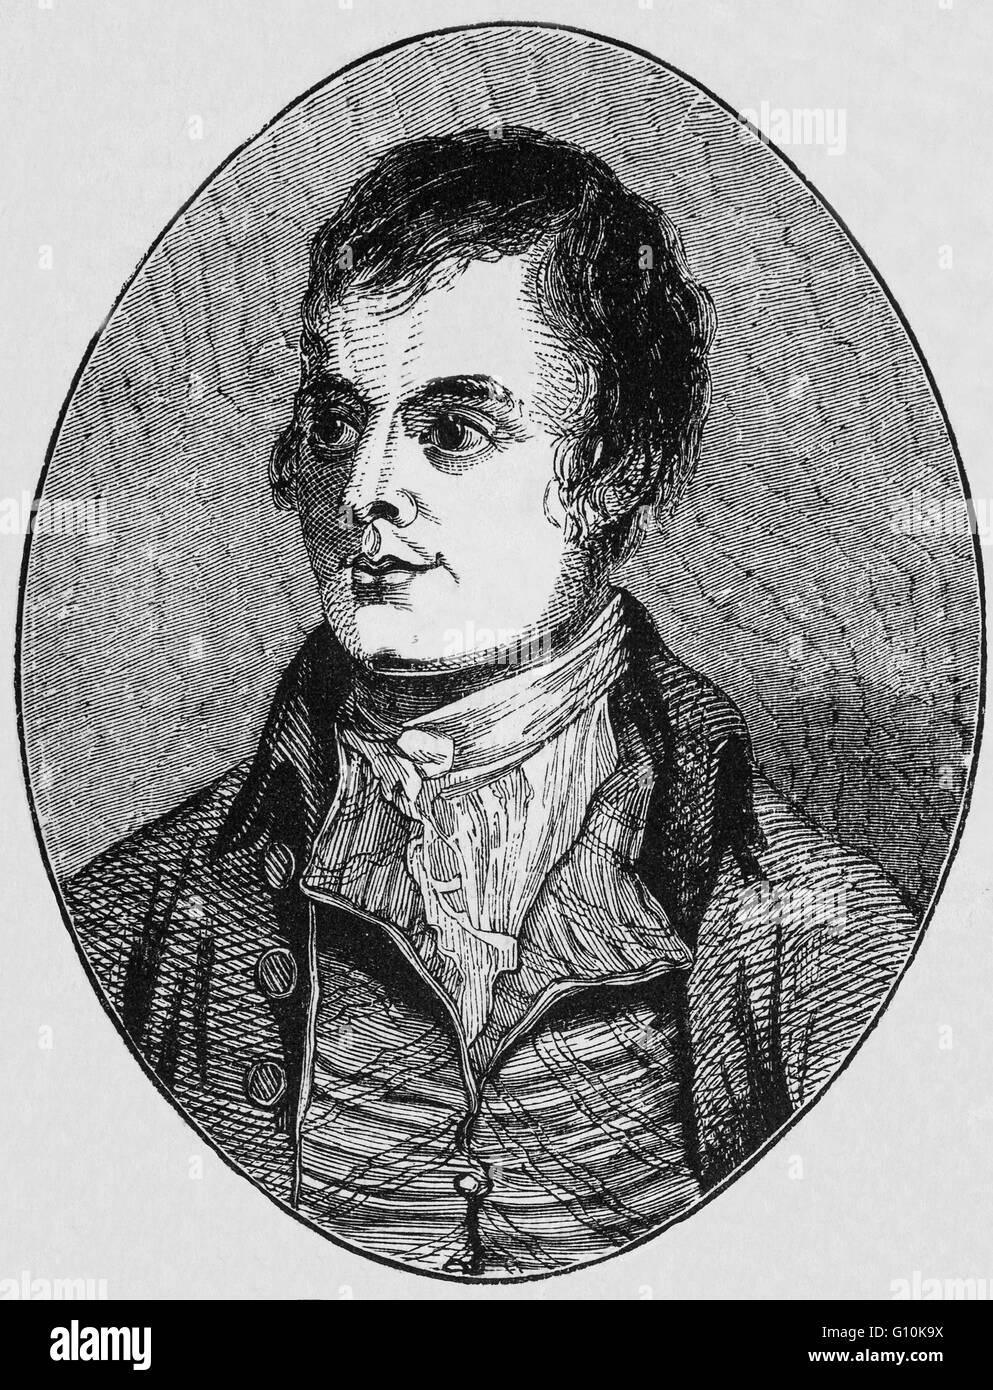 Robert Burns (1759 – 1796), also known as Rabbie Burns, the Bard of Ayrshire, a Scottish poet and lyricist, widely - Stock Image